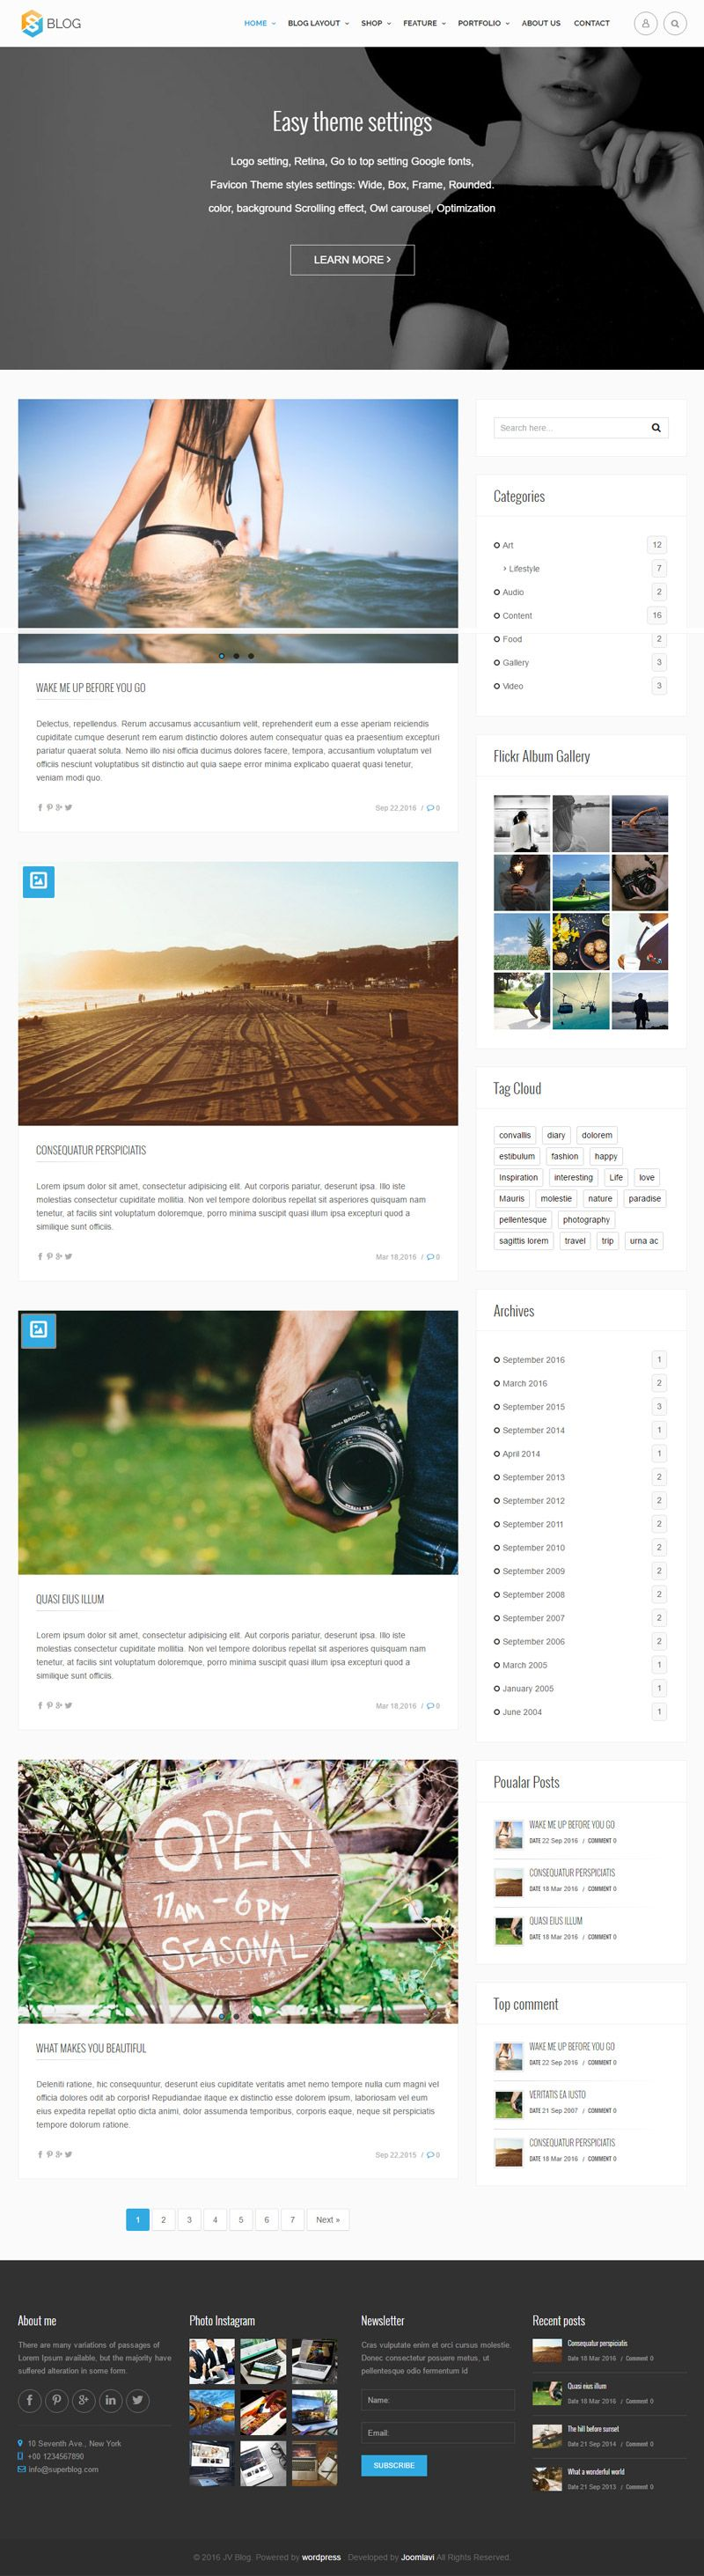 Jv Blog - Responsive WordPress Theme Screenshot 4